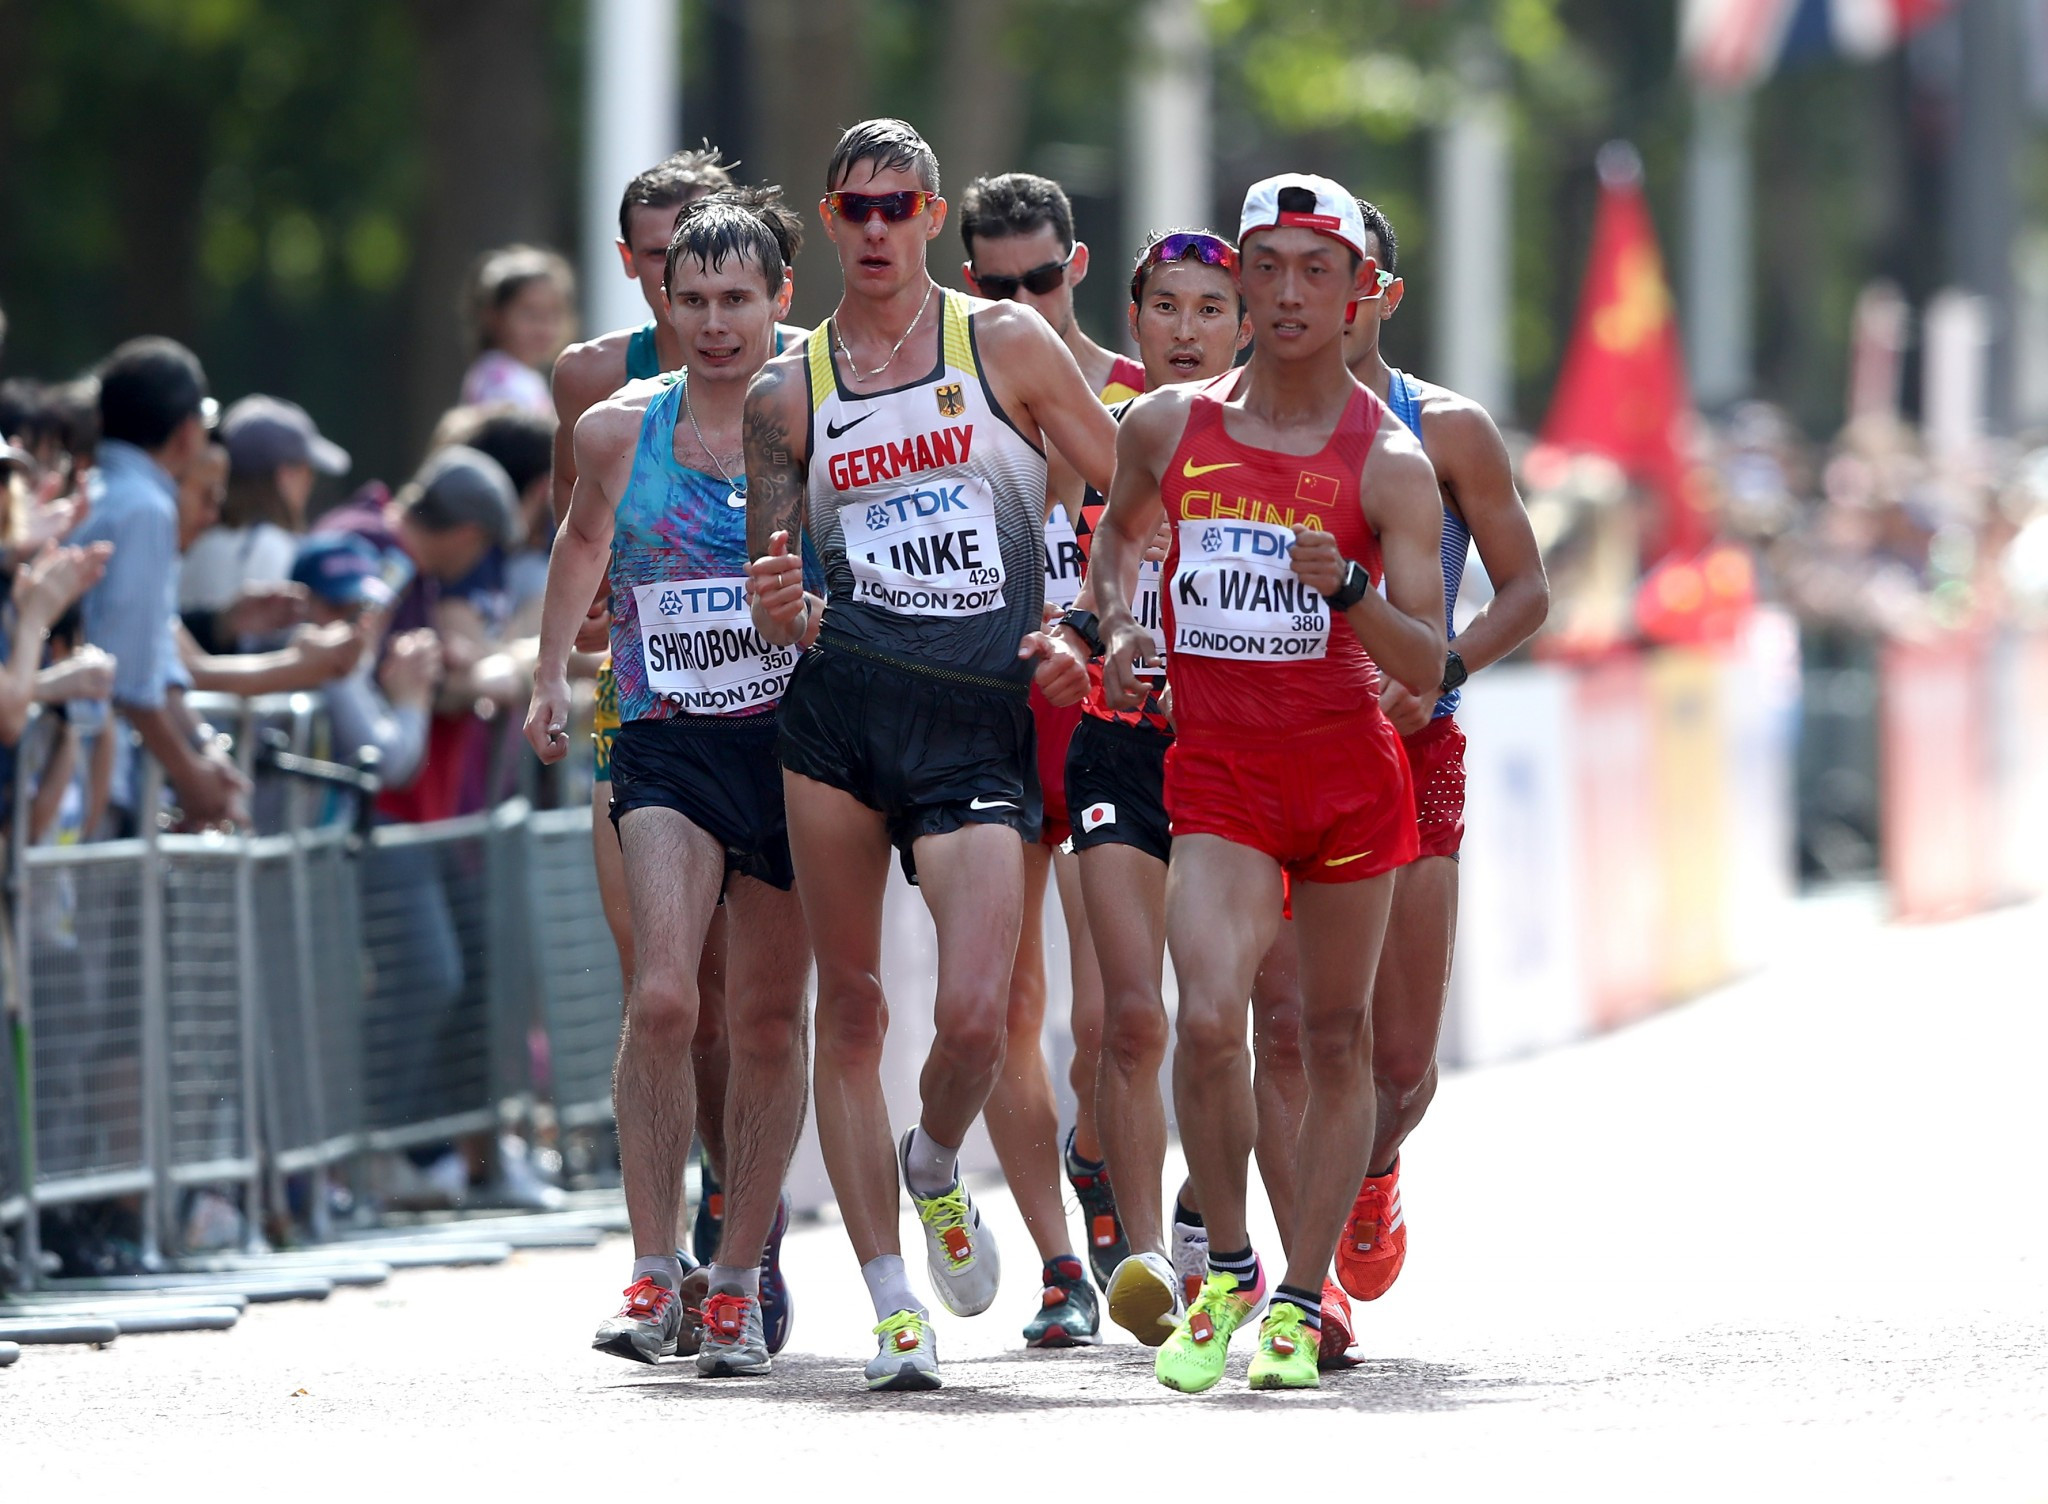 The race walking events at London 2017 all took place on the same day ©Getty Images